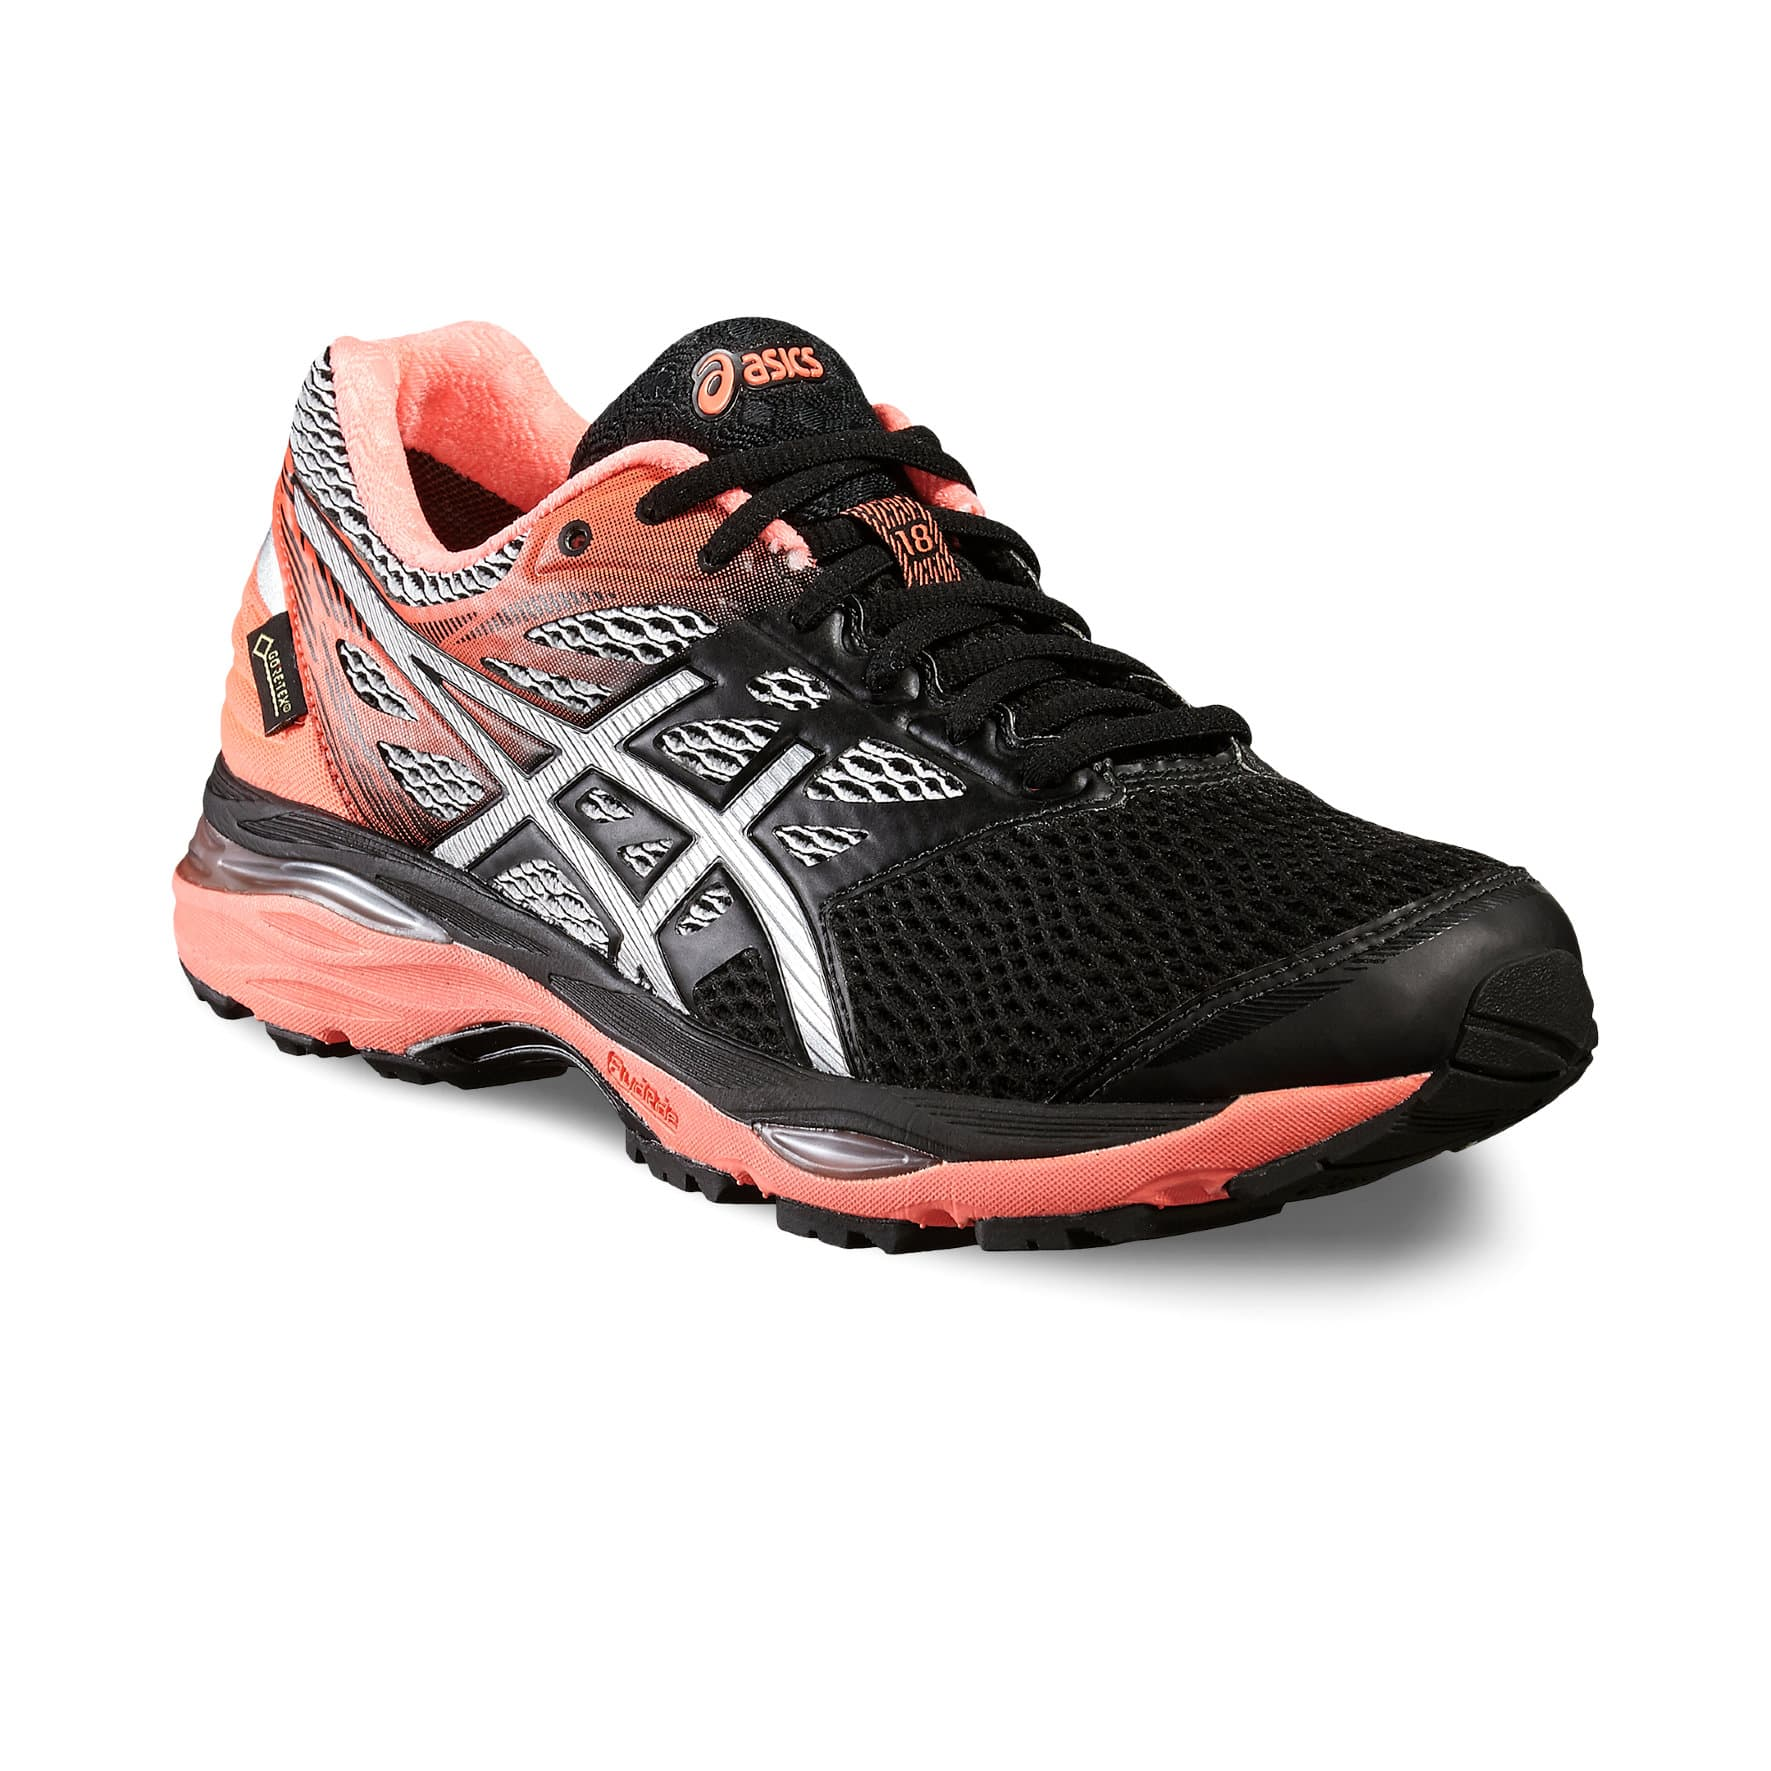 asics chaussures de course pour femme gel cumulus 18 gtx migros. Black Bedroom Furniture Sets. Home Design Ideas